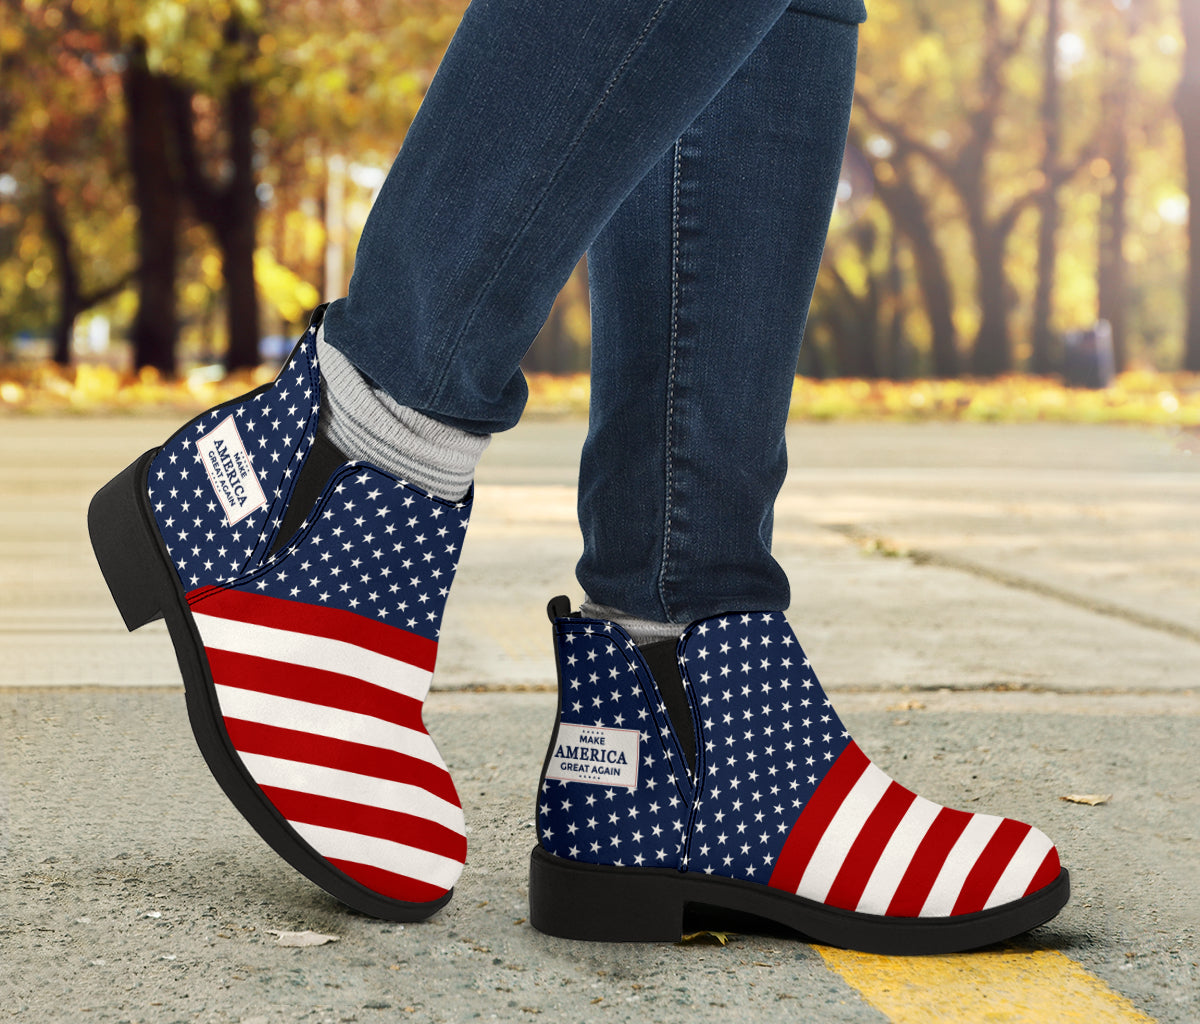 MAGA - Fashion Boots